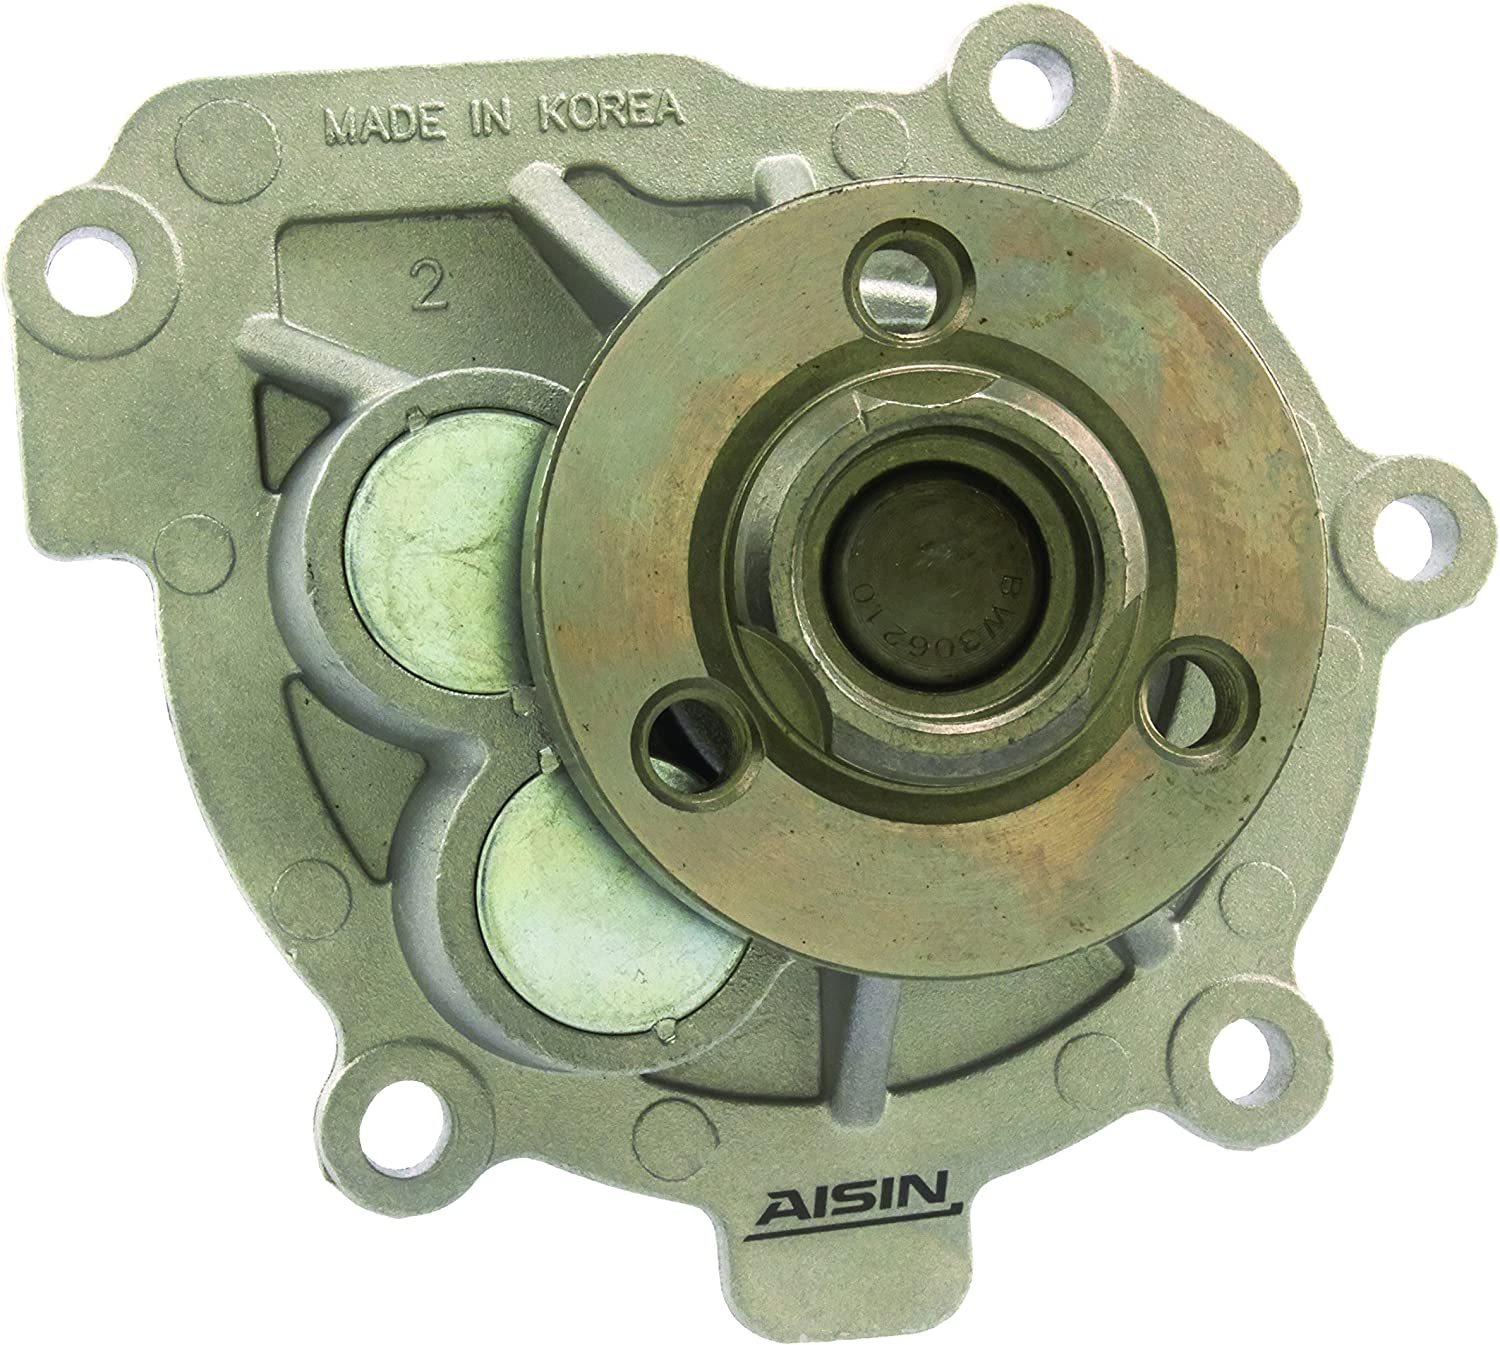 AISIN WPK-818 New OEM Water Pump Kit